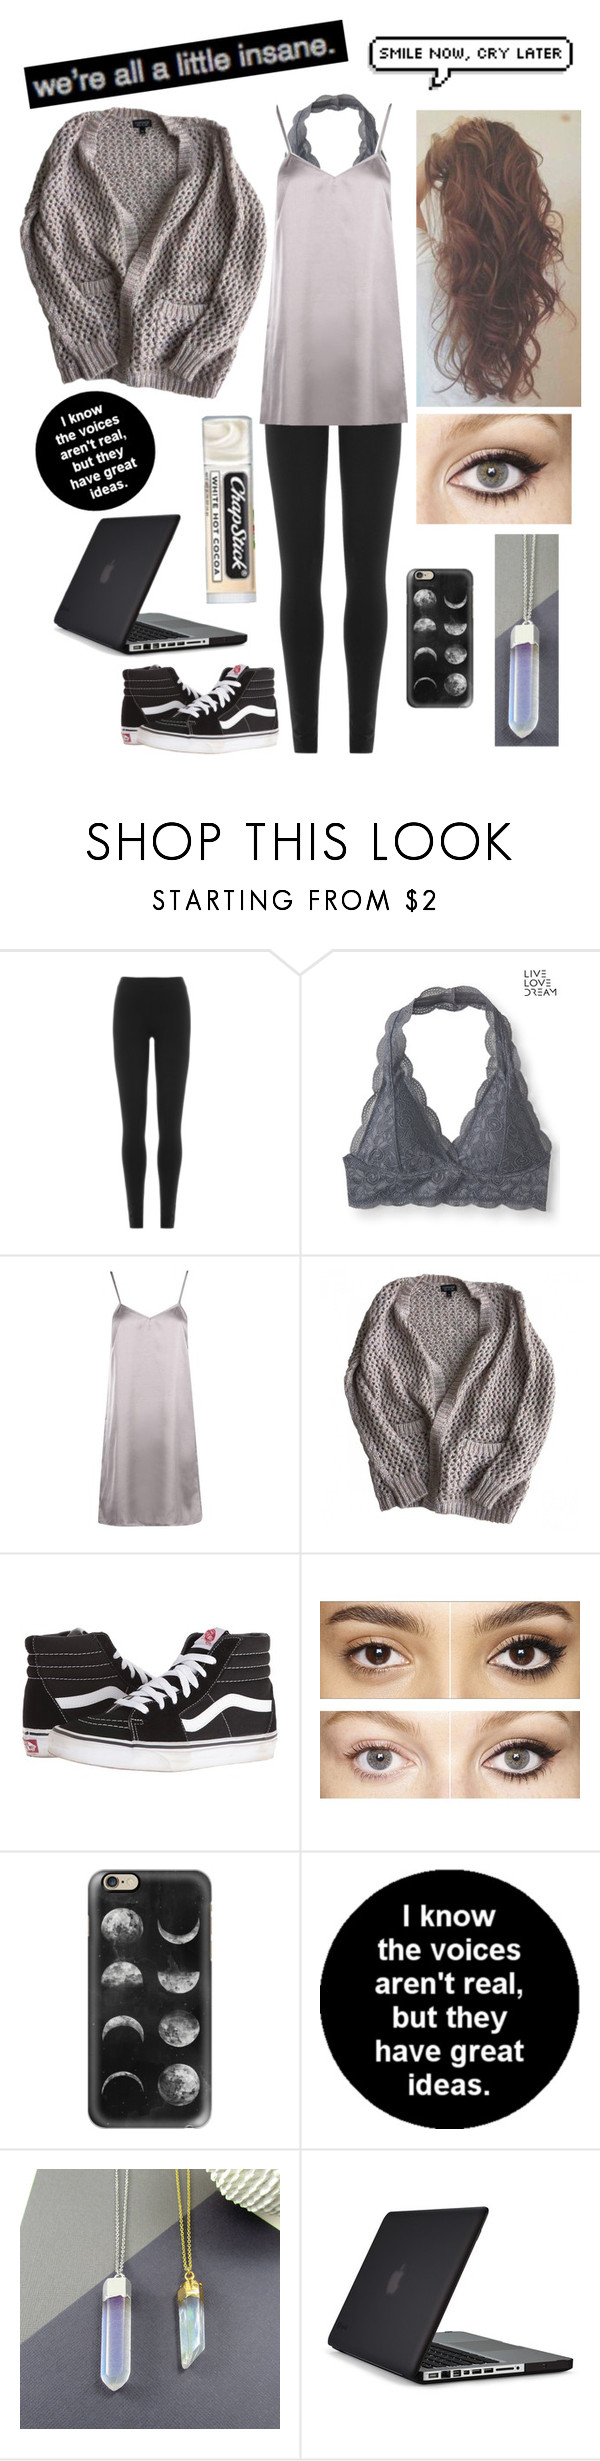 """""""Untitled #632"""" by alexbeirsack ❤ liked on Polyvore featuring DKNY, Aéropostale, Boohoo, Topshop, Vans, Charlotte Tilbury, Casetify, Speck and Chapstick"""